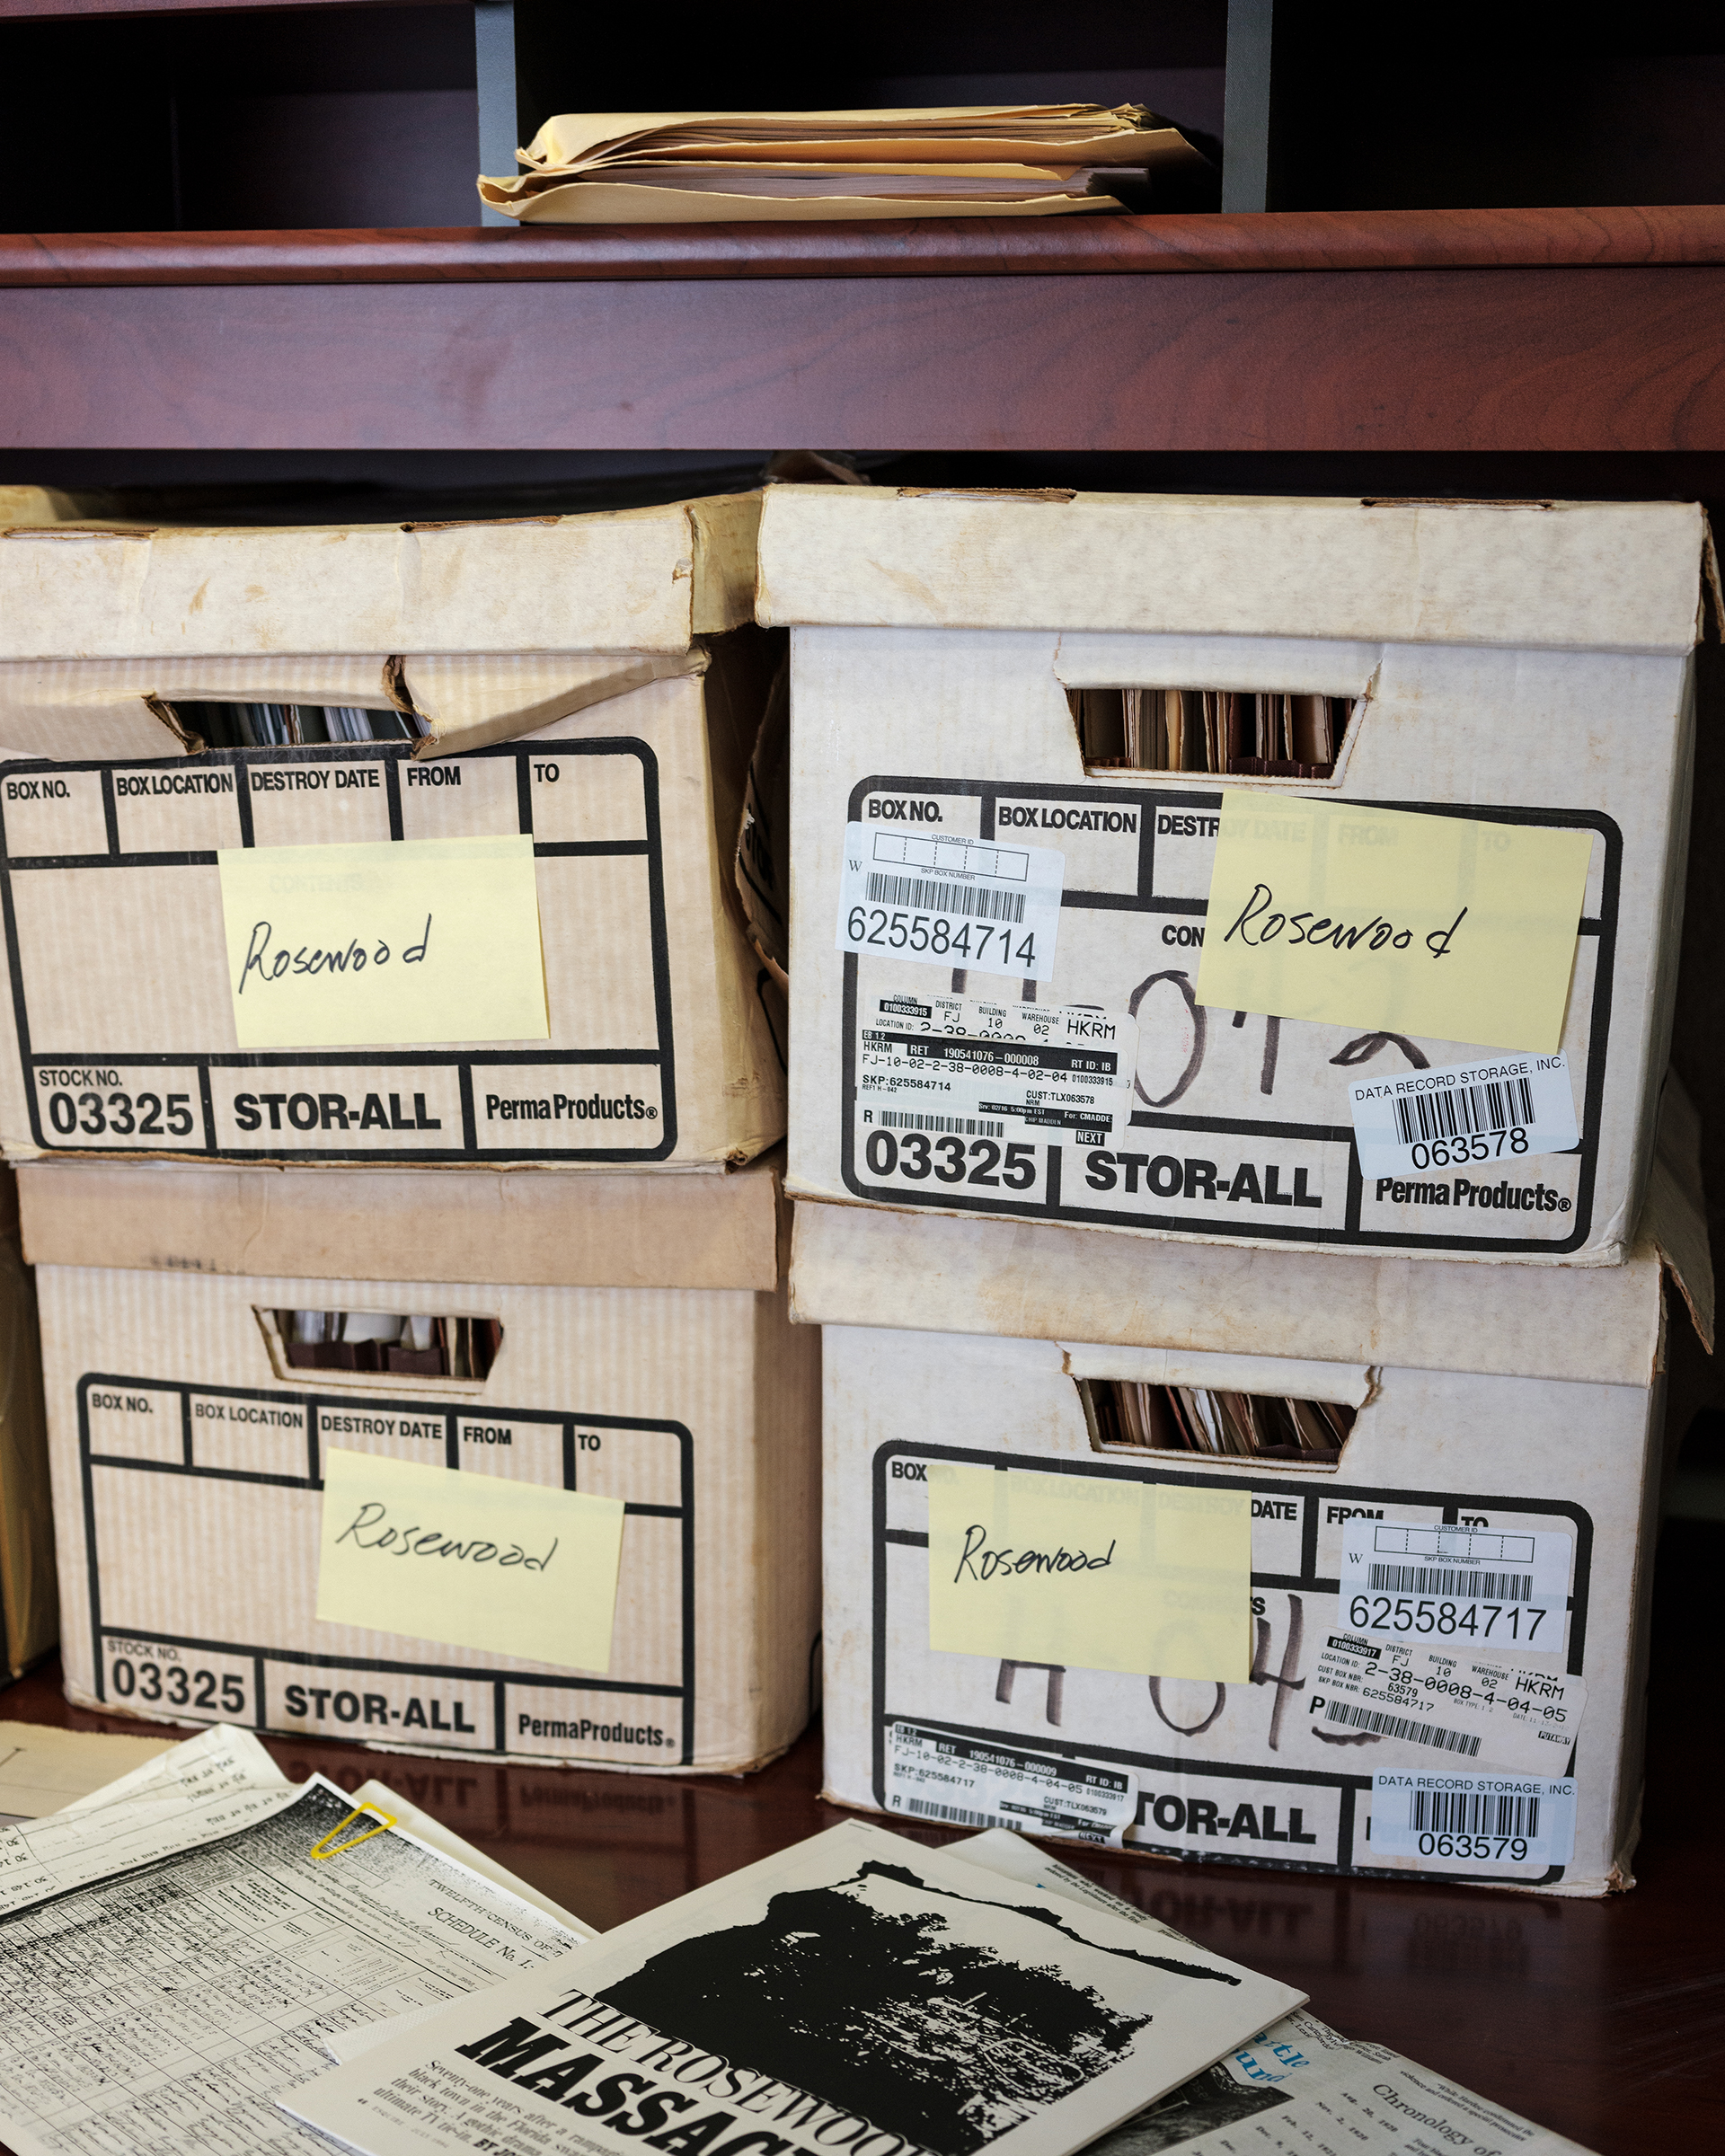 Boxes of Rosewood files at Barnett's office.